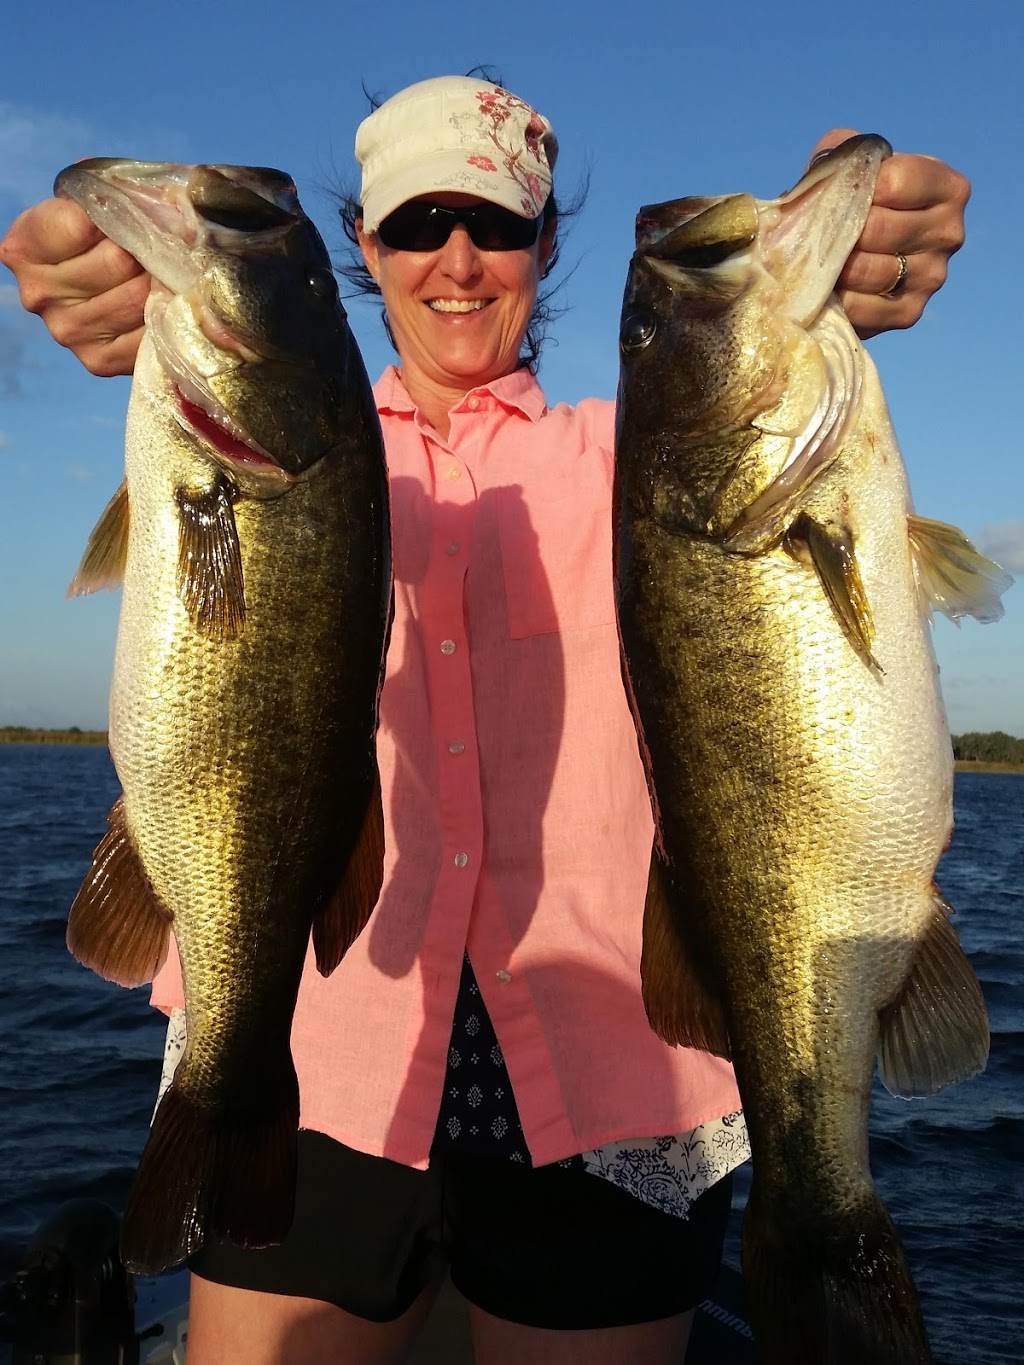 Gators Big Bass Guide Service - travel agency  | Photo 2 of 10 | Address: 70 Lakeview Dr, Kissimmee, FL 34741, USA | Phone: (407) 856-7961